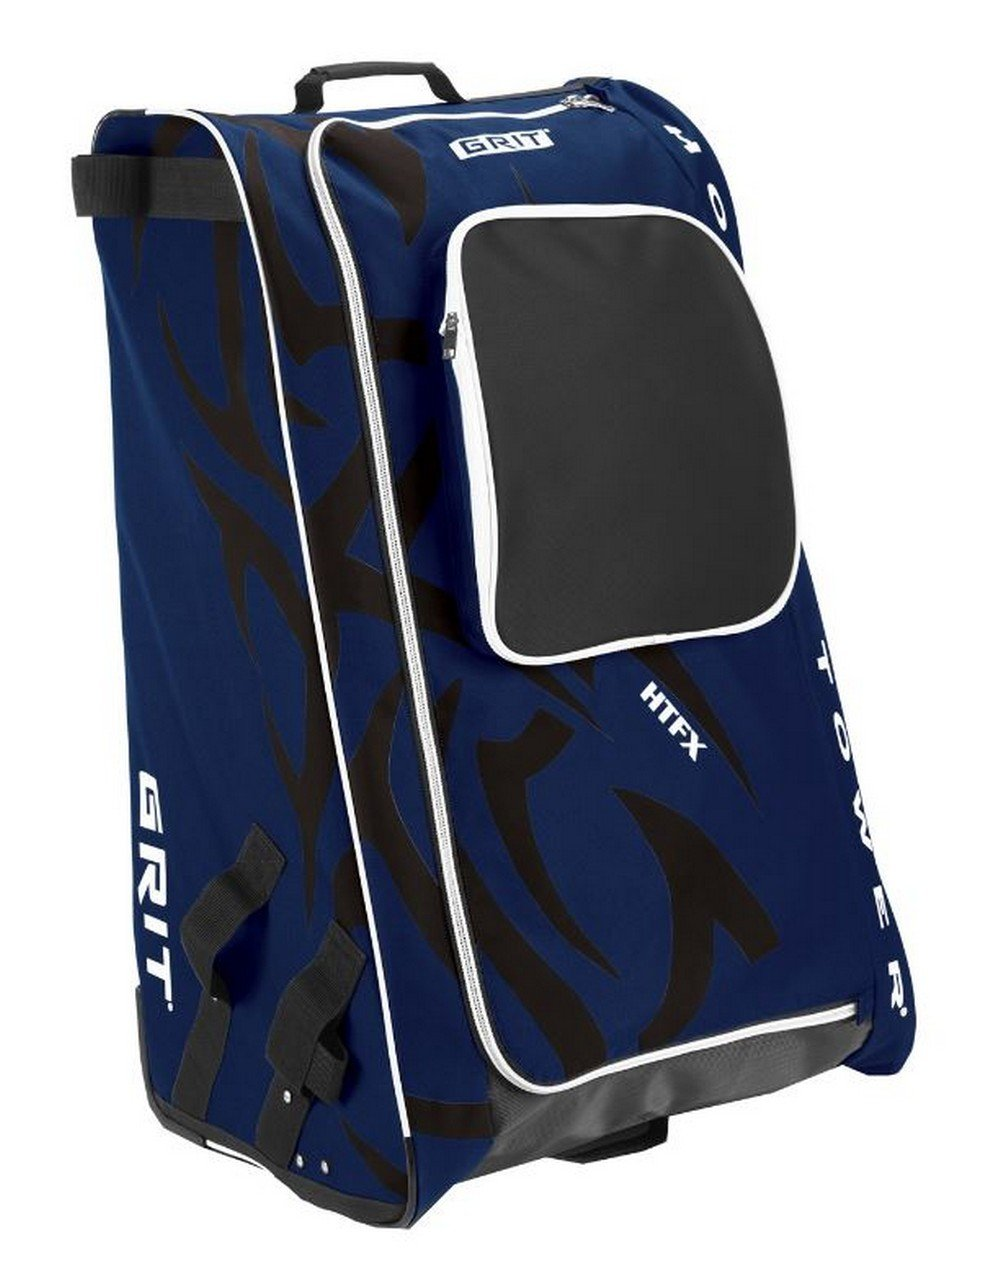 Grit Inc HTFX Hockey Tower 33'' Wheeled Equipment Bag Navy HTFX033-NY (Navy)